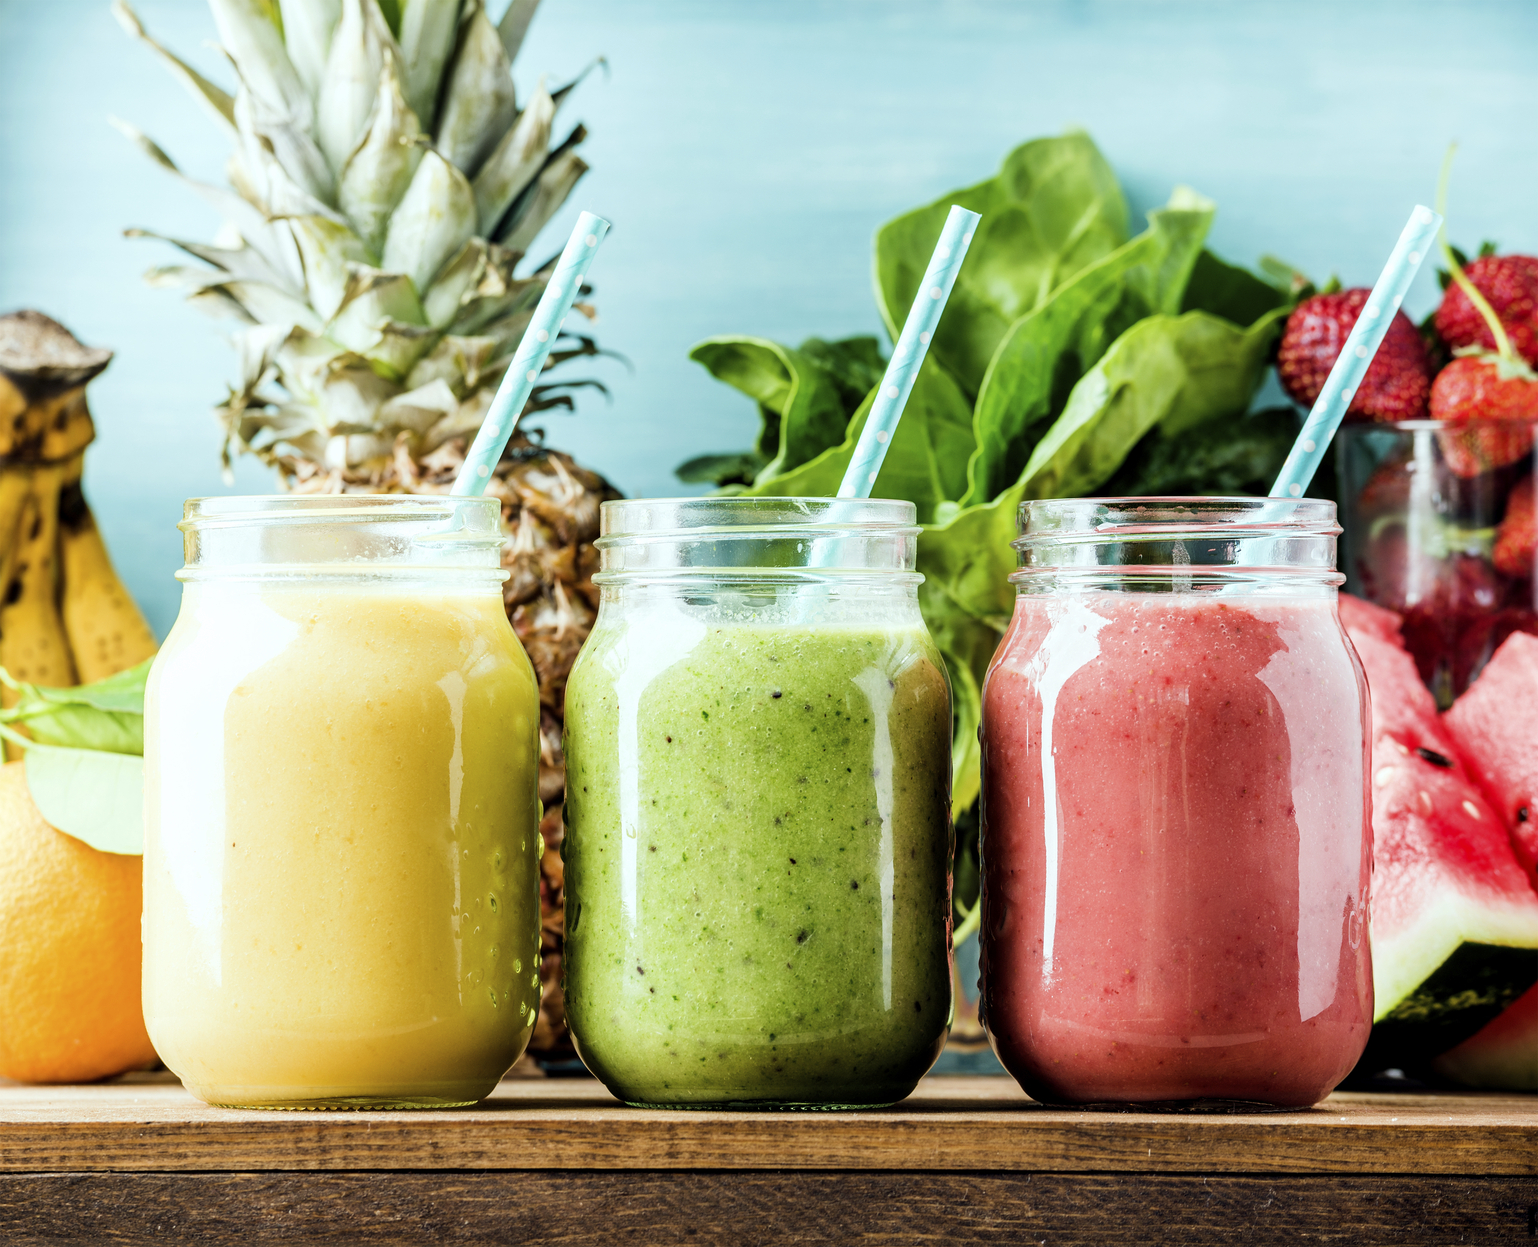 Are fresh juice drinks as healthy as they seem? - Harvard